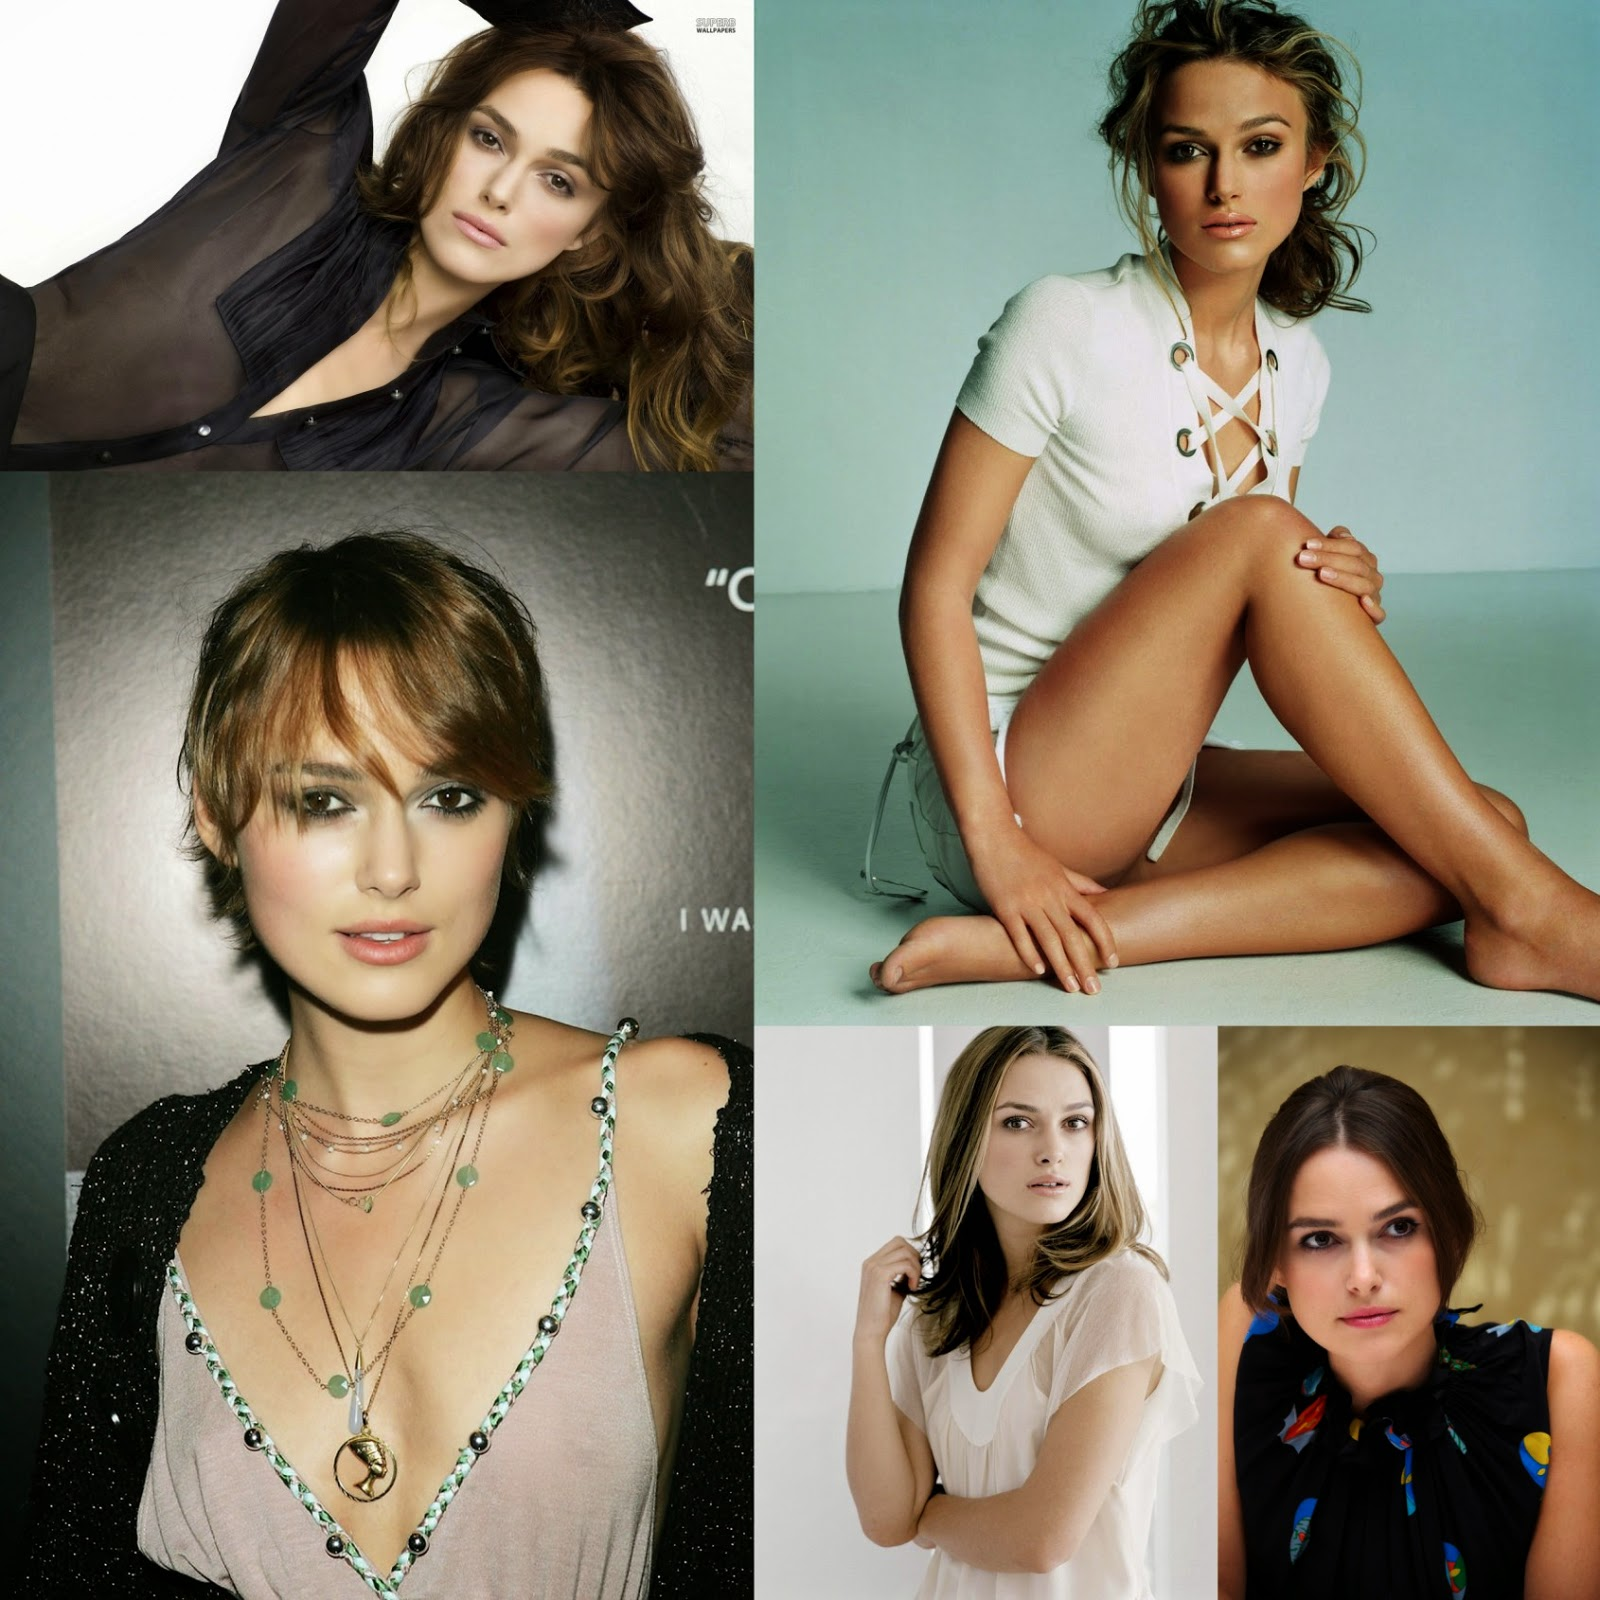 Keira knightley Hot Photos